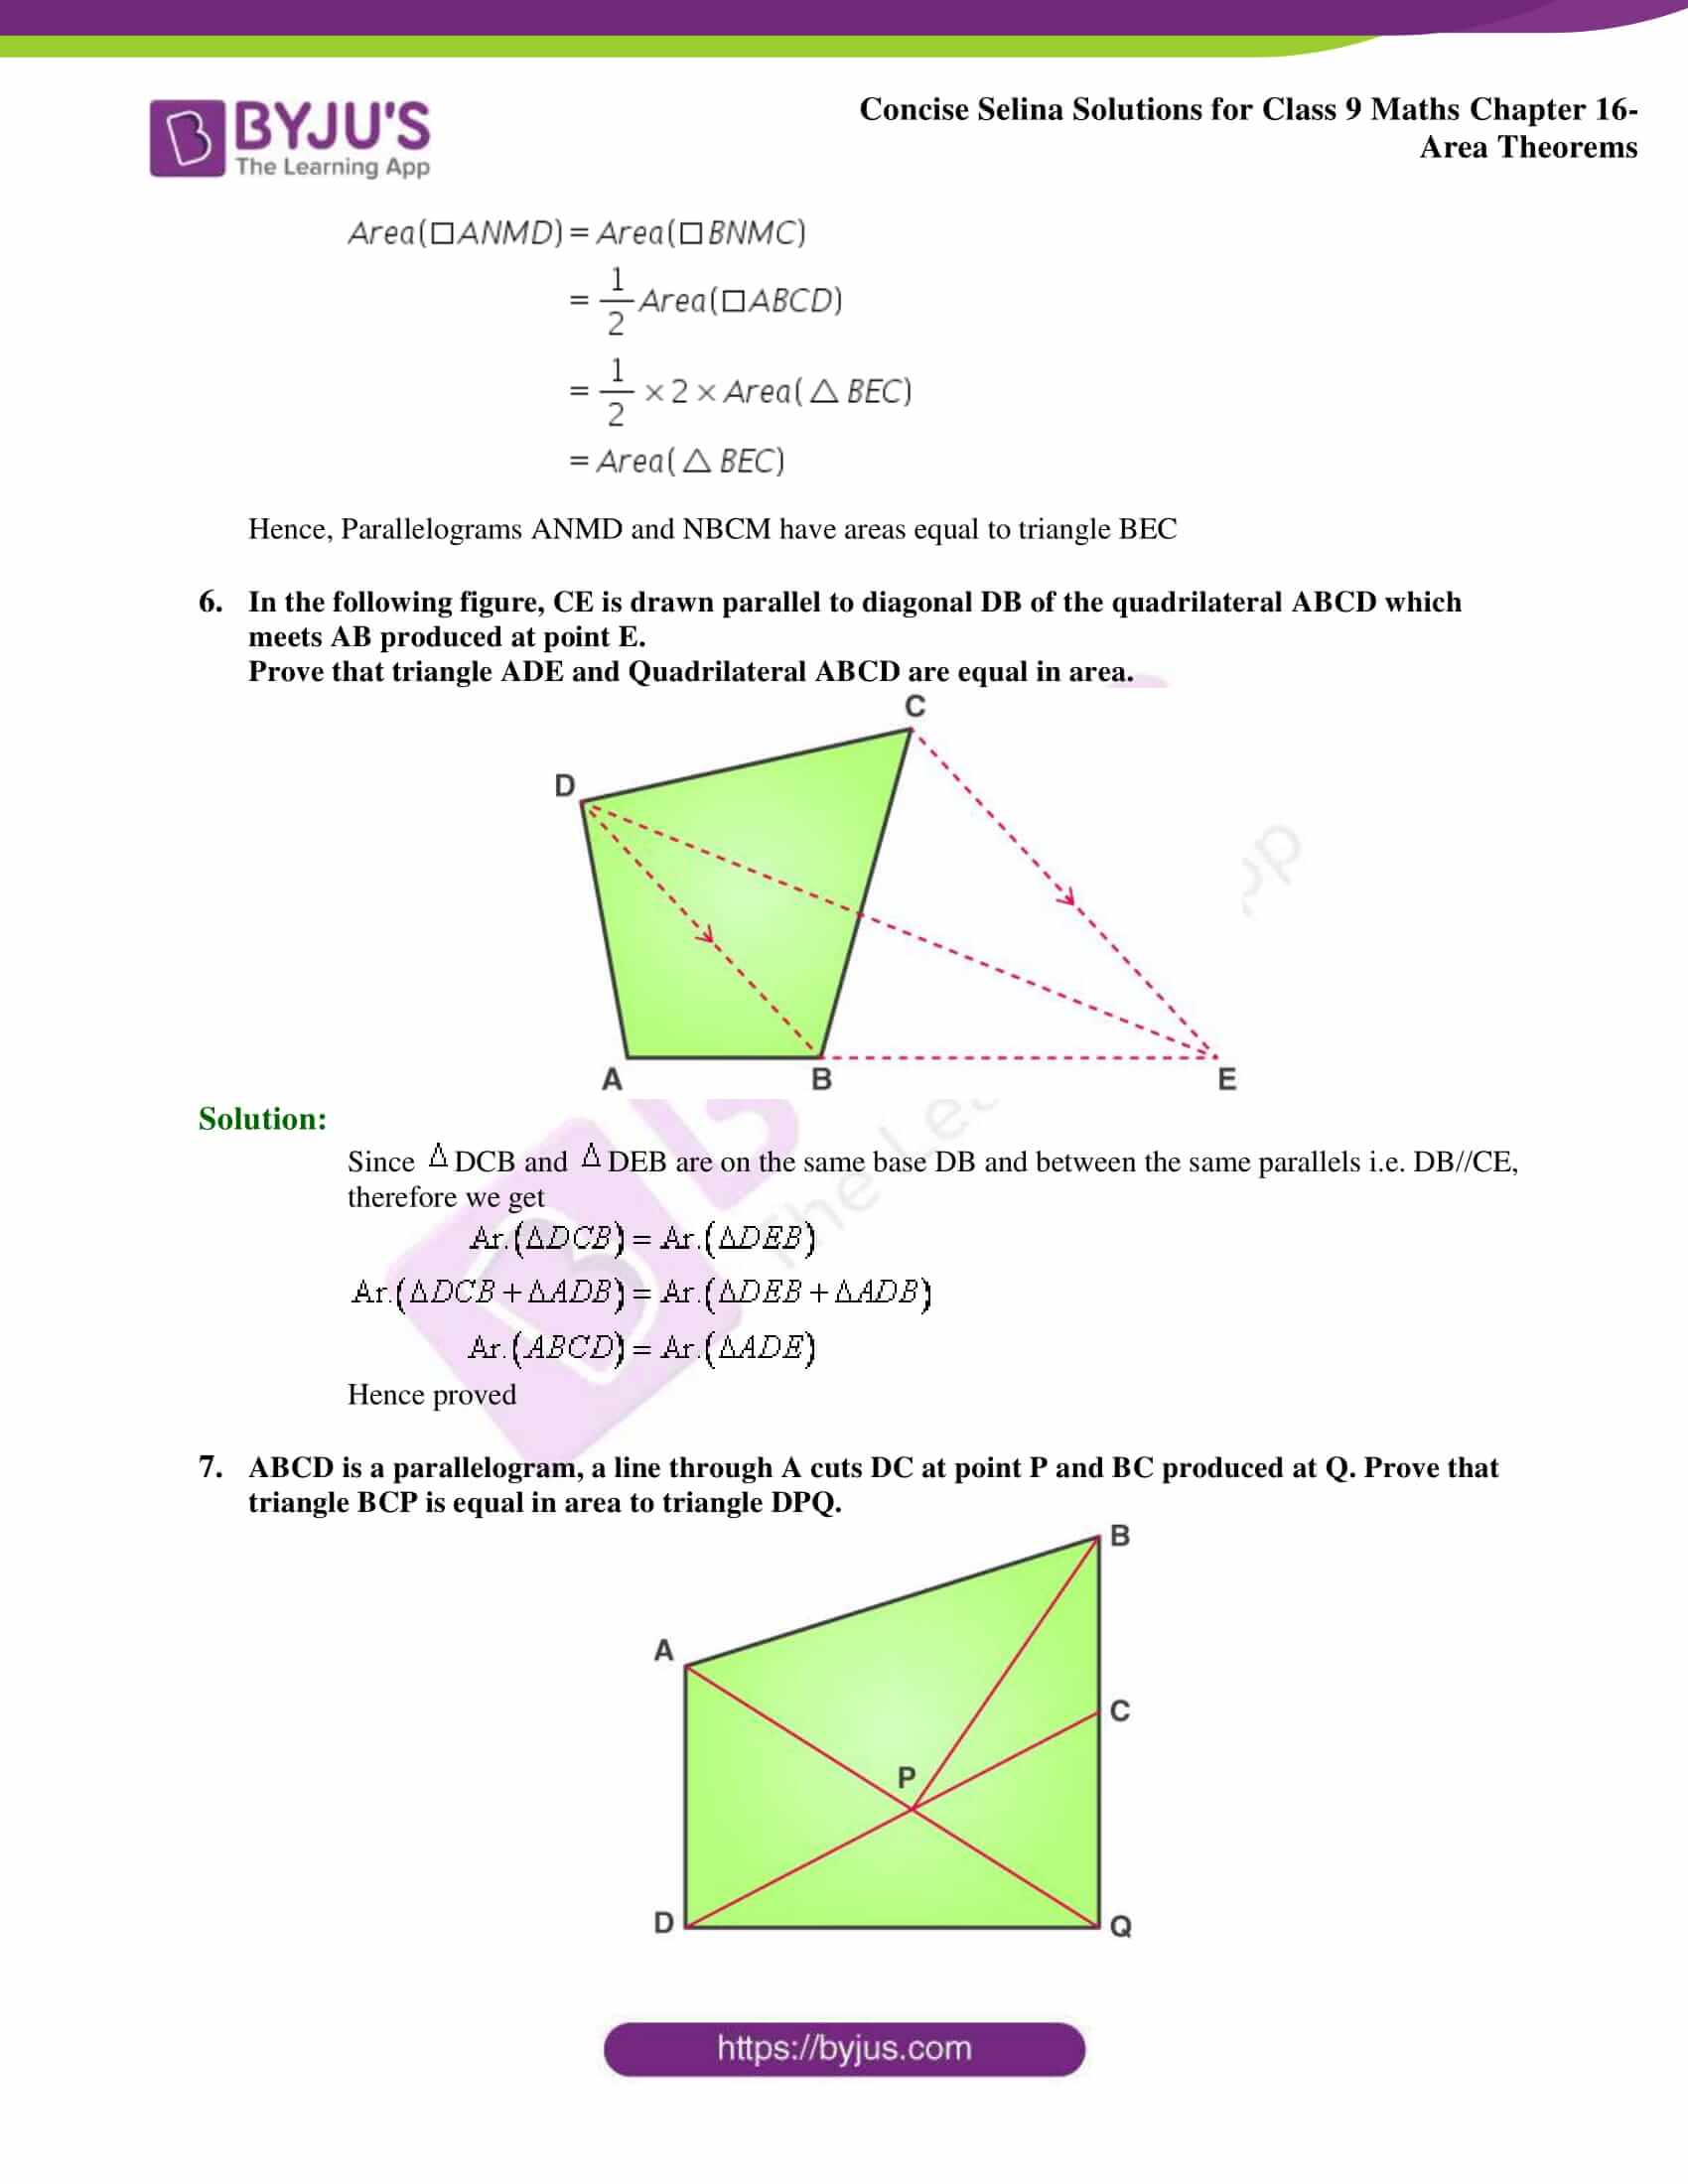 Concise Selina Solutions Class 9 Maths Chapter 16 Area Theorems part 05